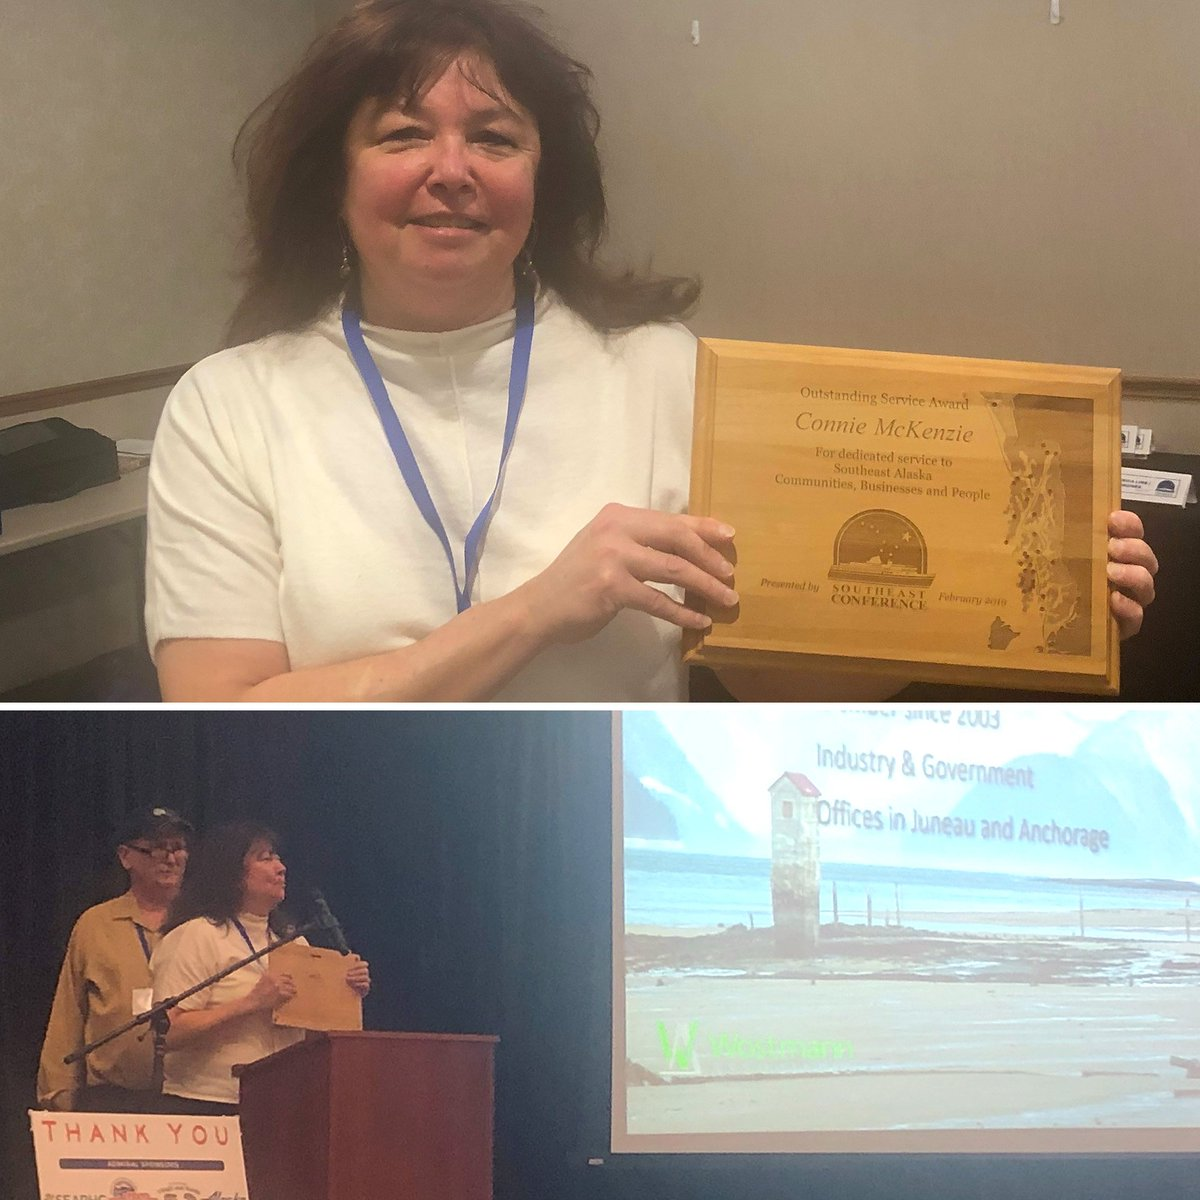 My long-time staff member Connie McKenzie was honored with the Outstanding Service Award today at Southeast Conference's Mid-Session Summit. Connie retired her post as Regional Director for both @lisamurkowski and me in Juneau. Best wishes and snowy ski trails, Connie.